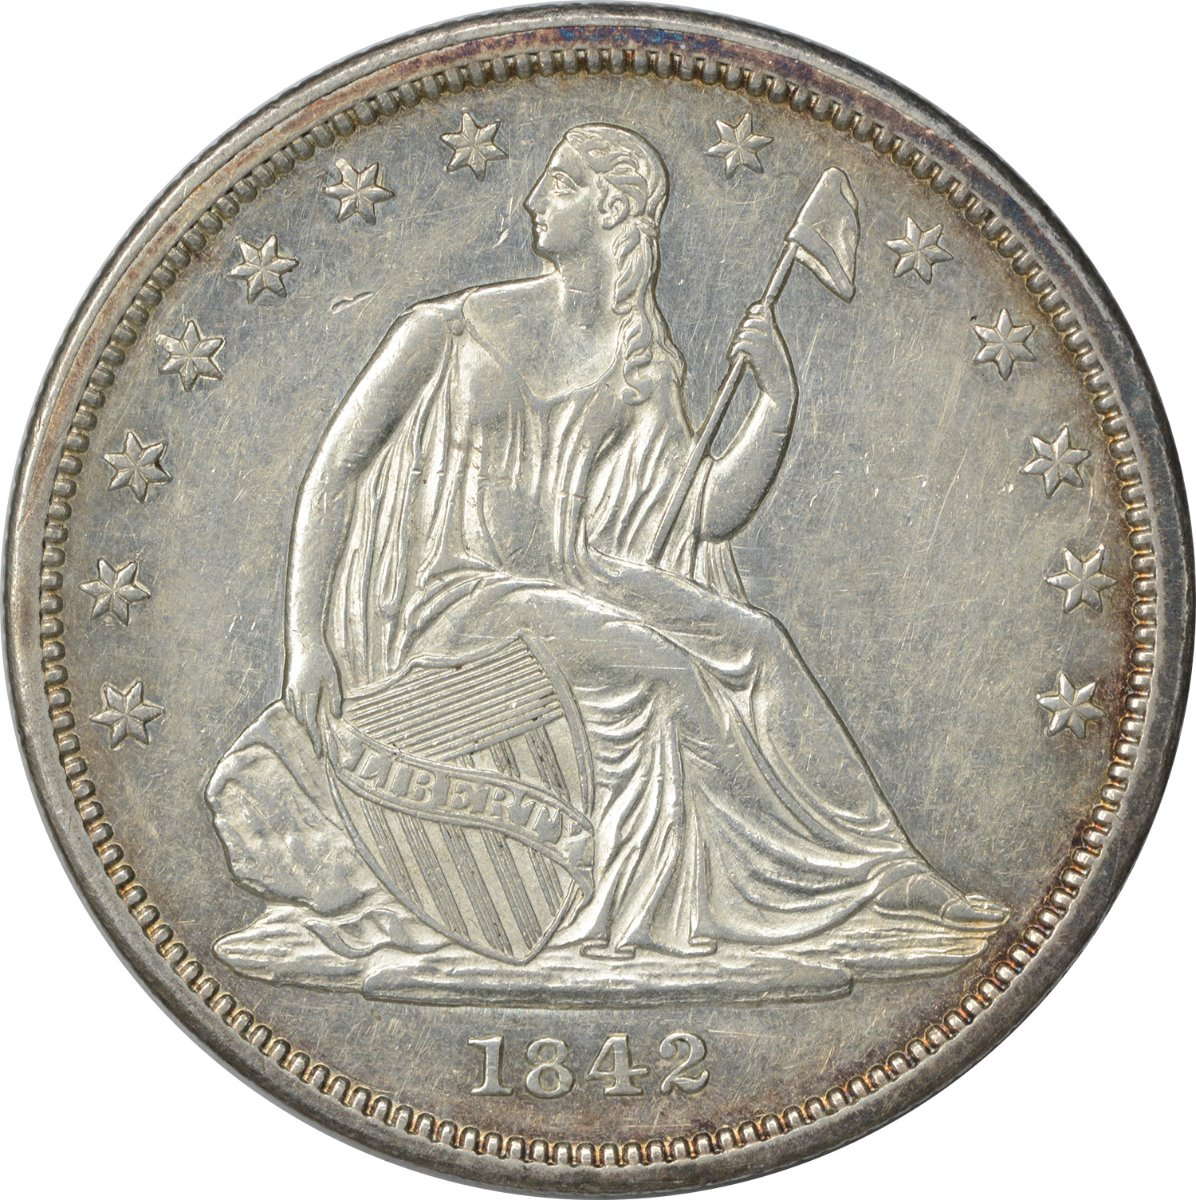 Liberty Seated Silver Halves